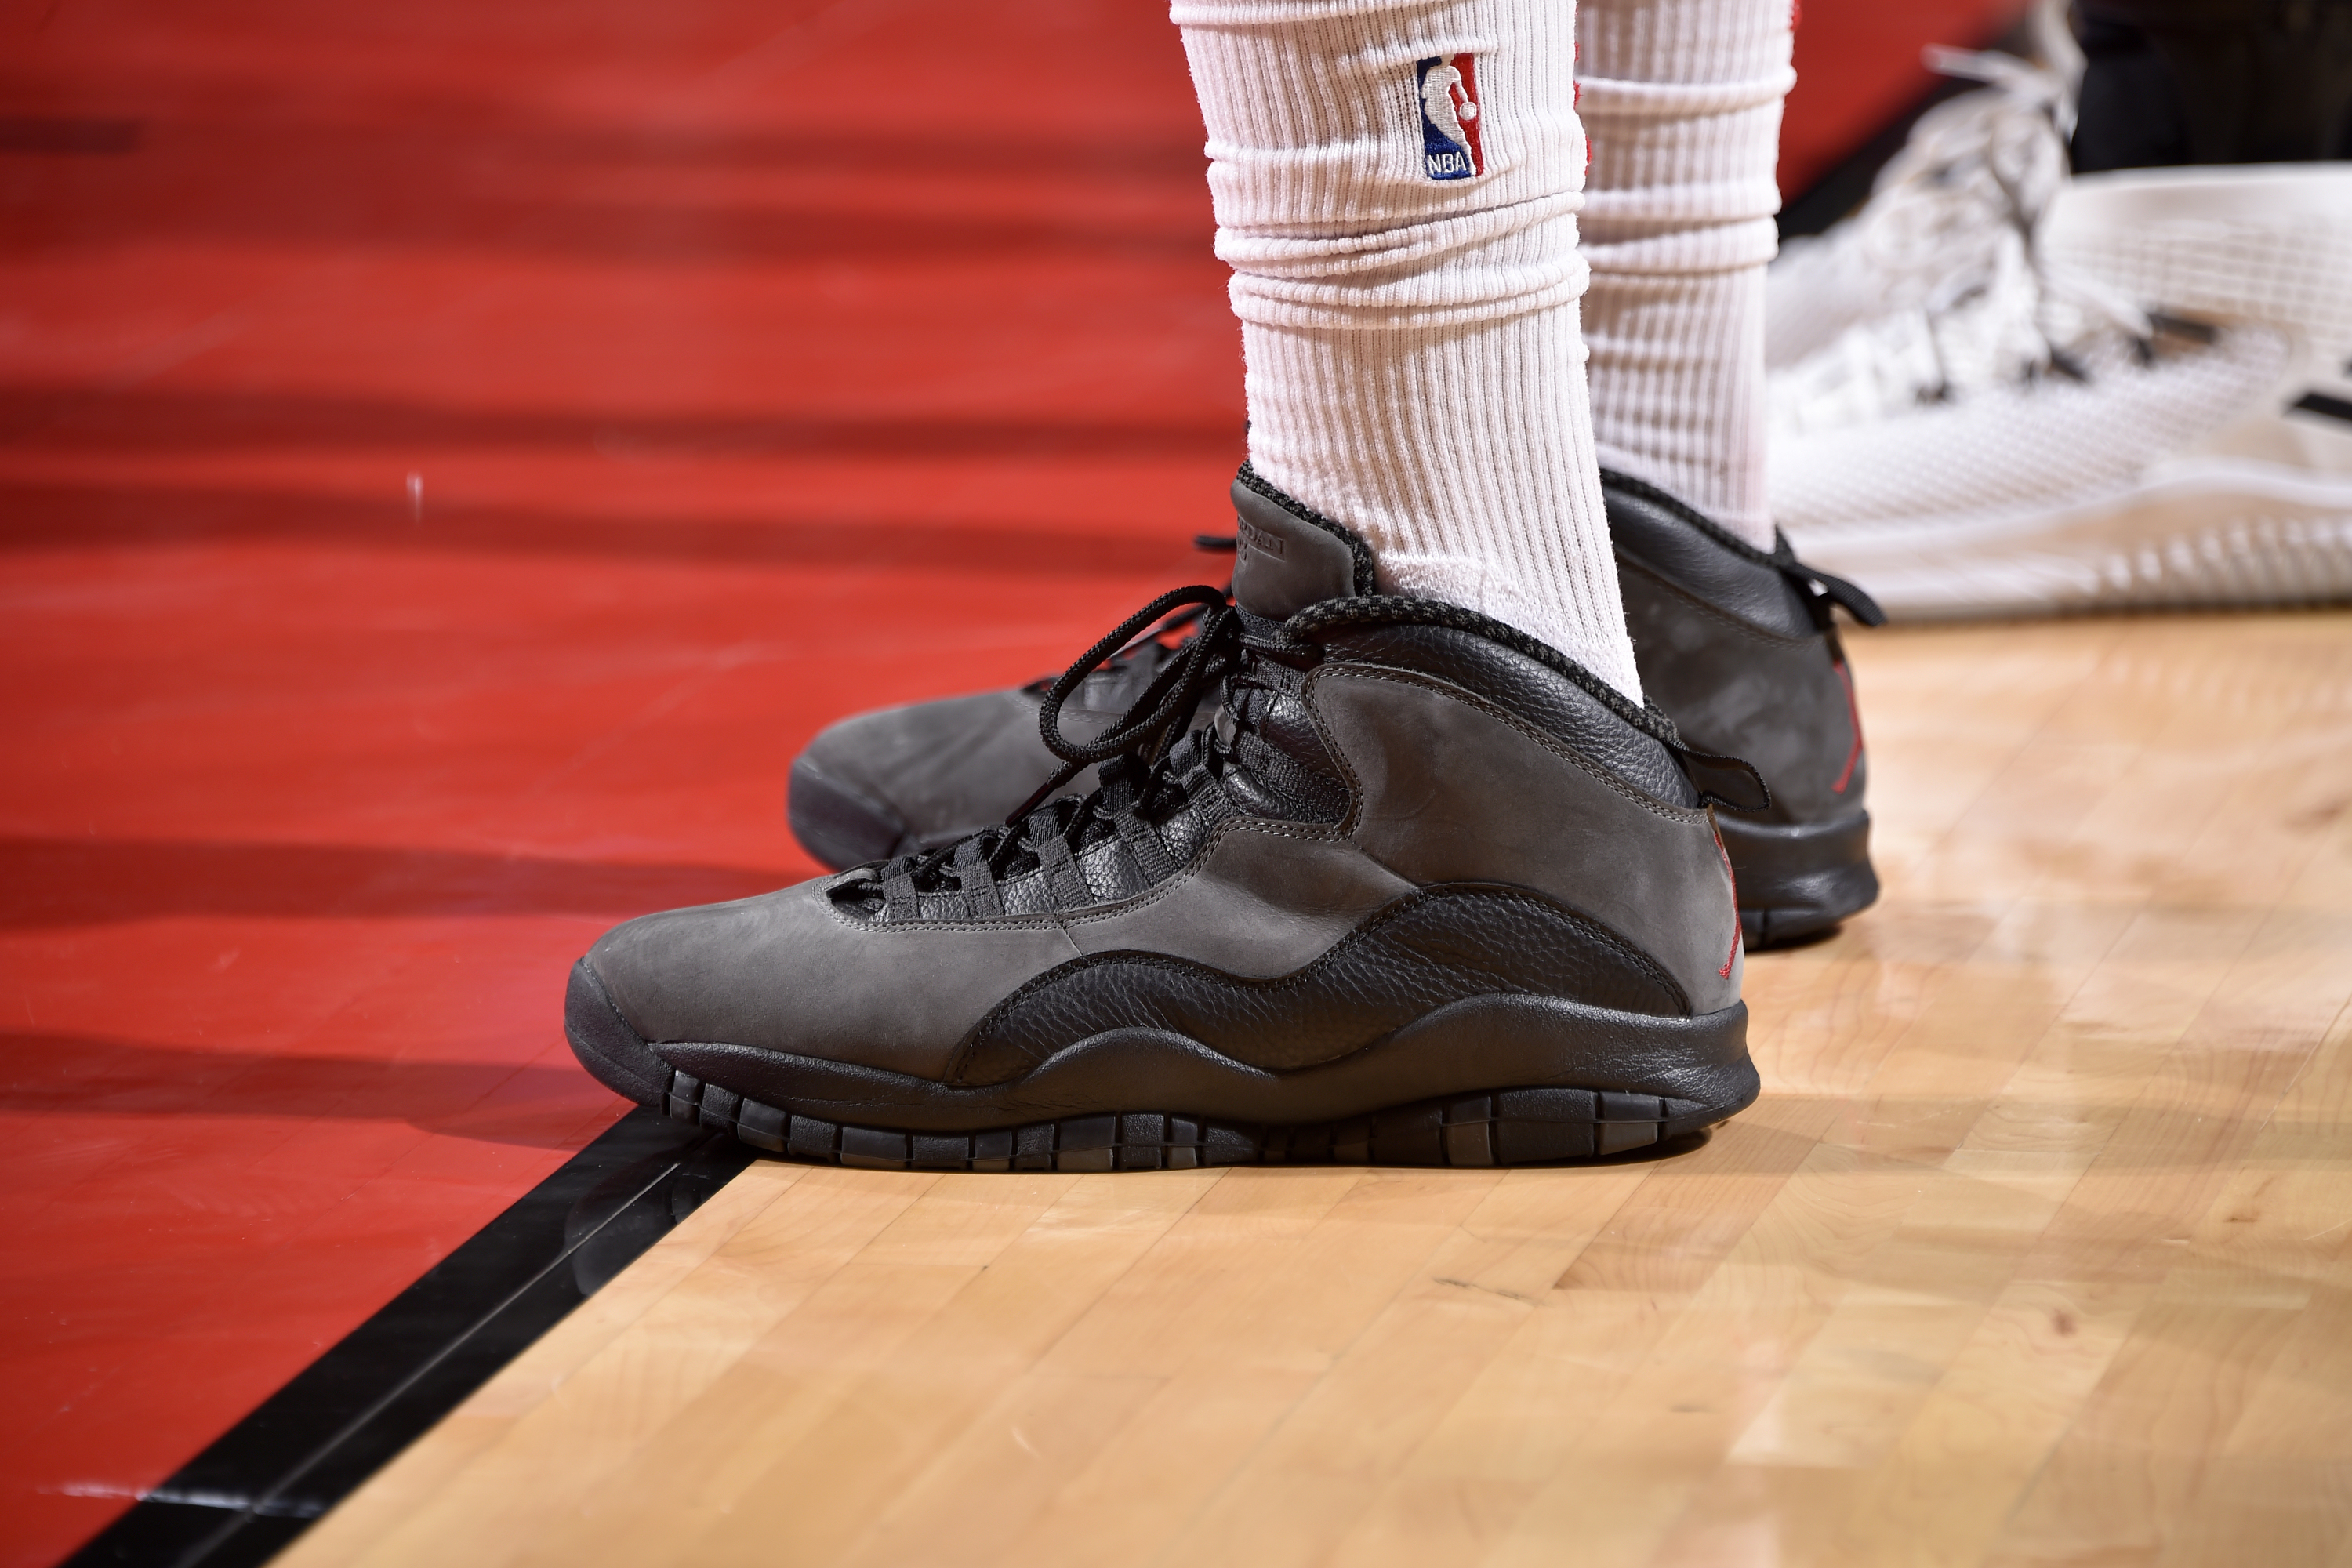 0d458a3dc2e0 The sneakers of P.J. Tucker of the Houston Rockets during the second half of  Game 5 against the Minnesota Timberwolves in the first round of the 2018  NBA ...